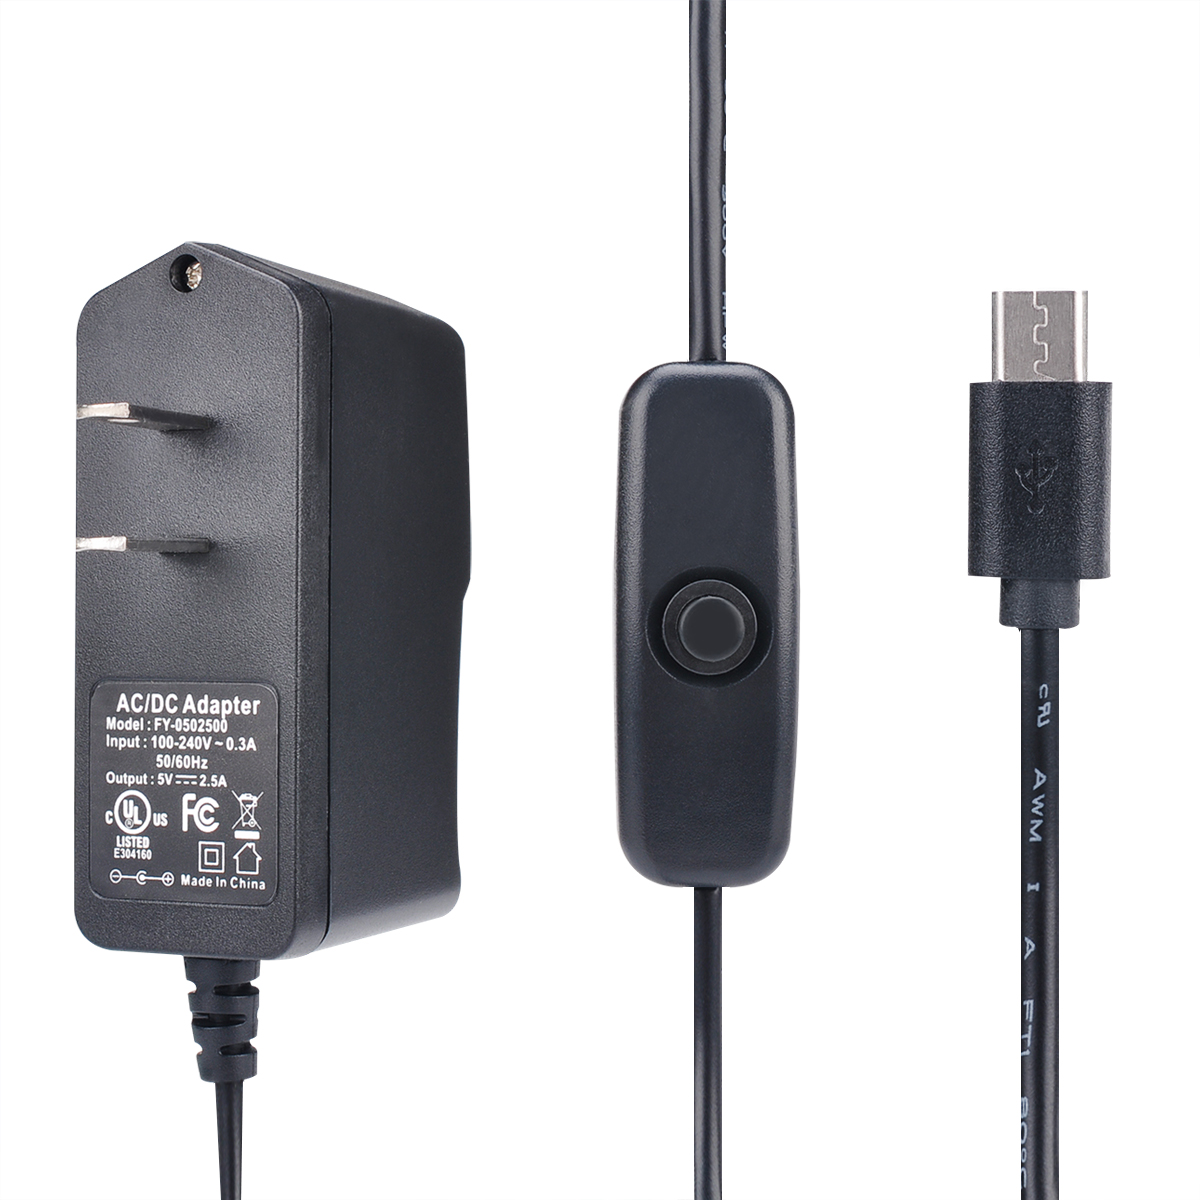 Enokay Power Supply for Raspberry Pi 2 3 b b+ 5V 2.5A Micro USB Charger Adapter with On Off Switch (UL Listed)